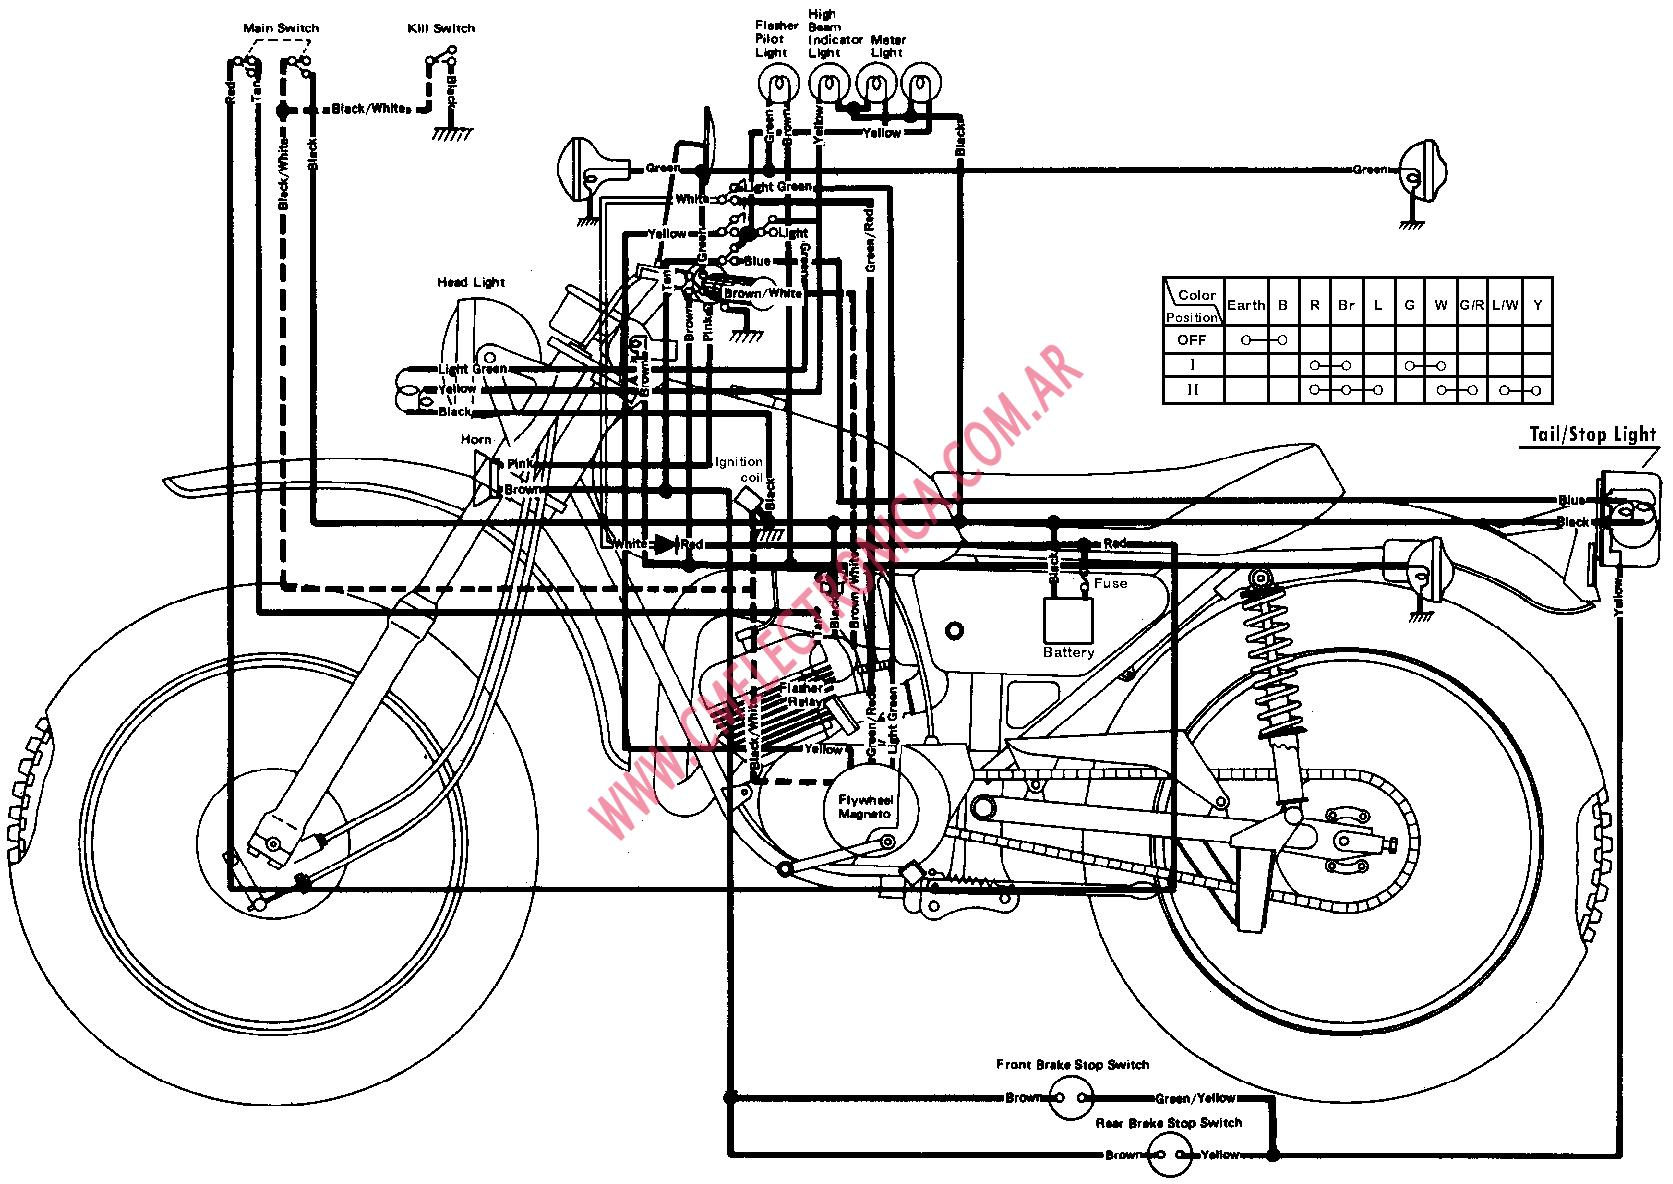 Superb Yamaha Chappy Wiring Diagram Wiring Diagram Database Wiring Digital Resources Antuskbiperorg